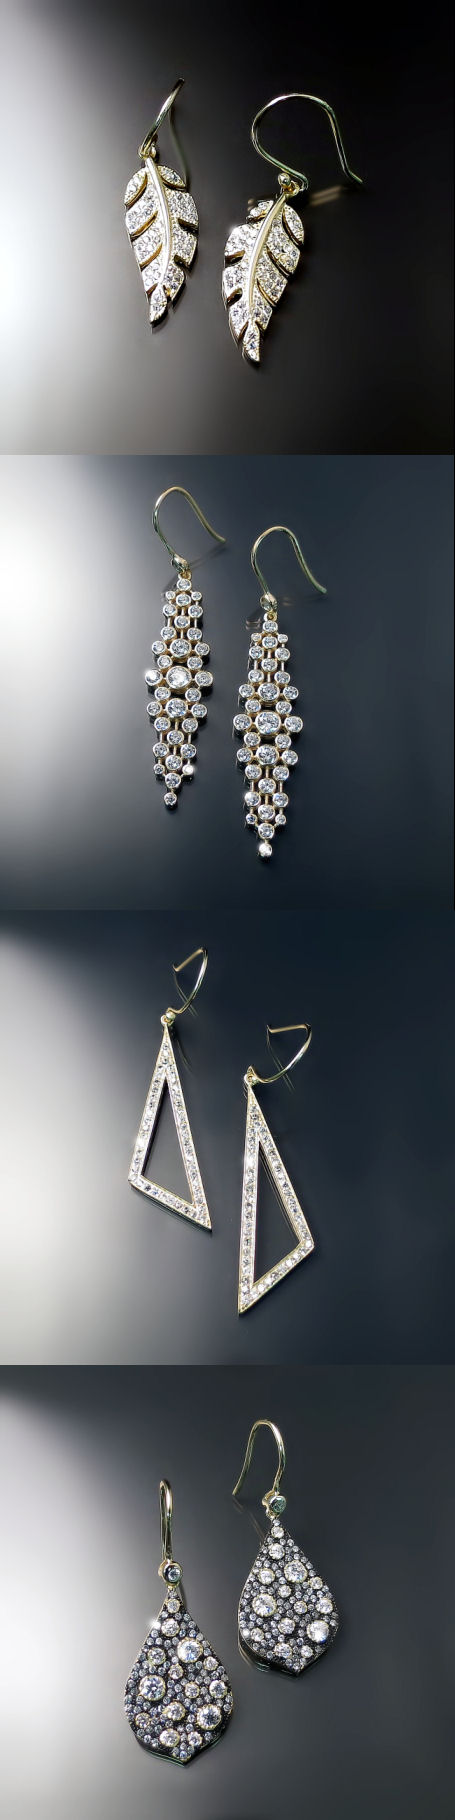 cubic zirconia cz jewelry sparkly gold statement earrings